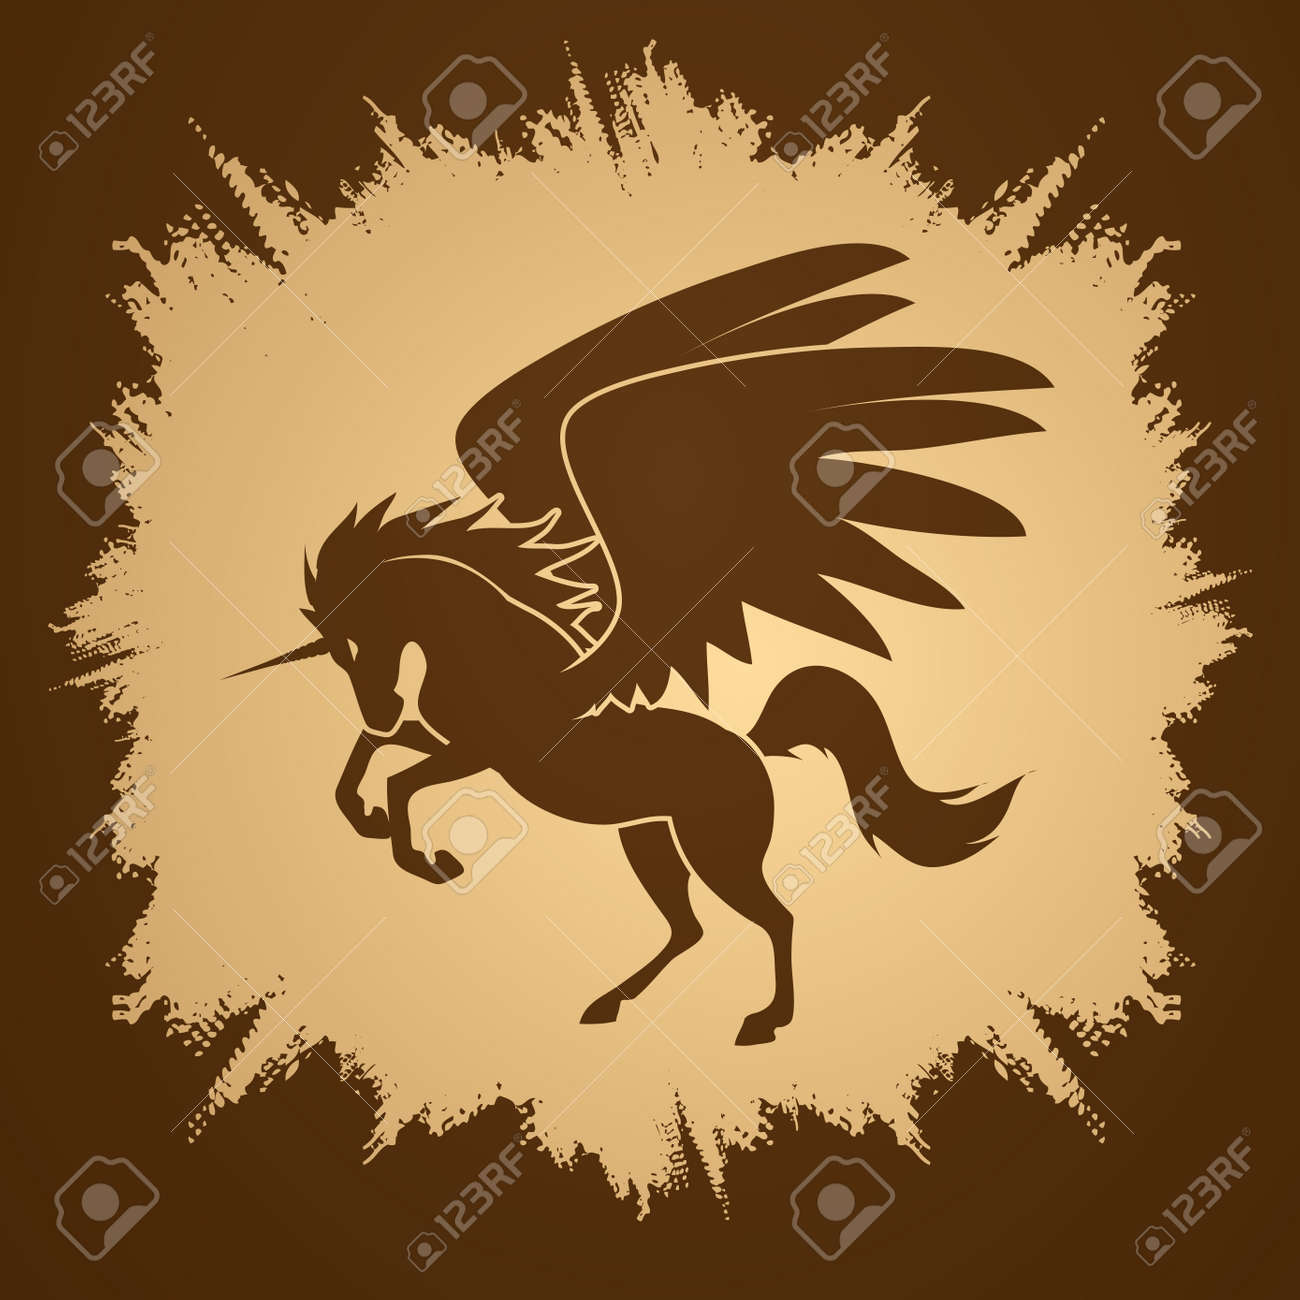 Fly Unicorn silhouette designed on grunge frame background graphic